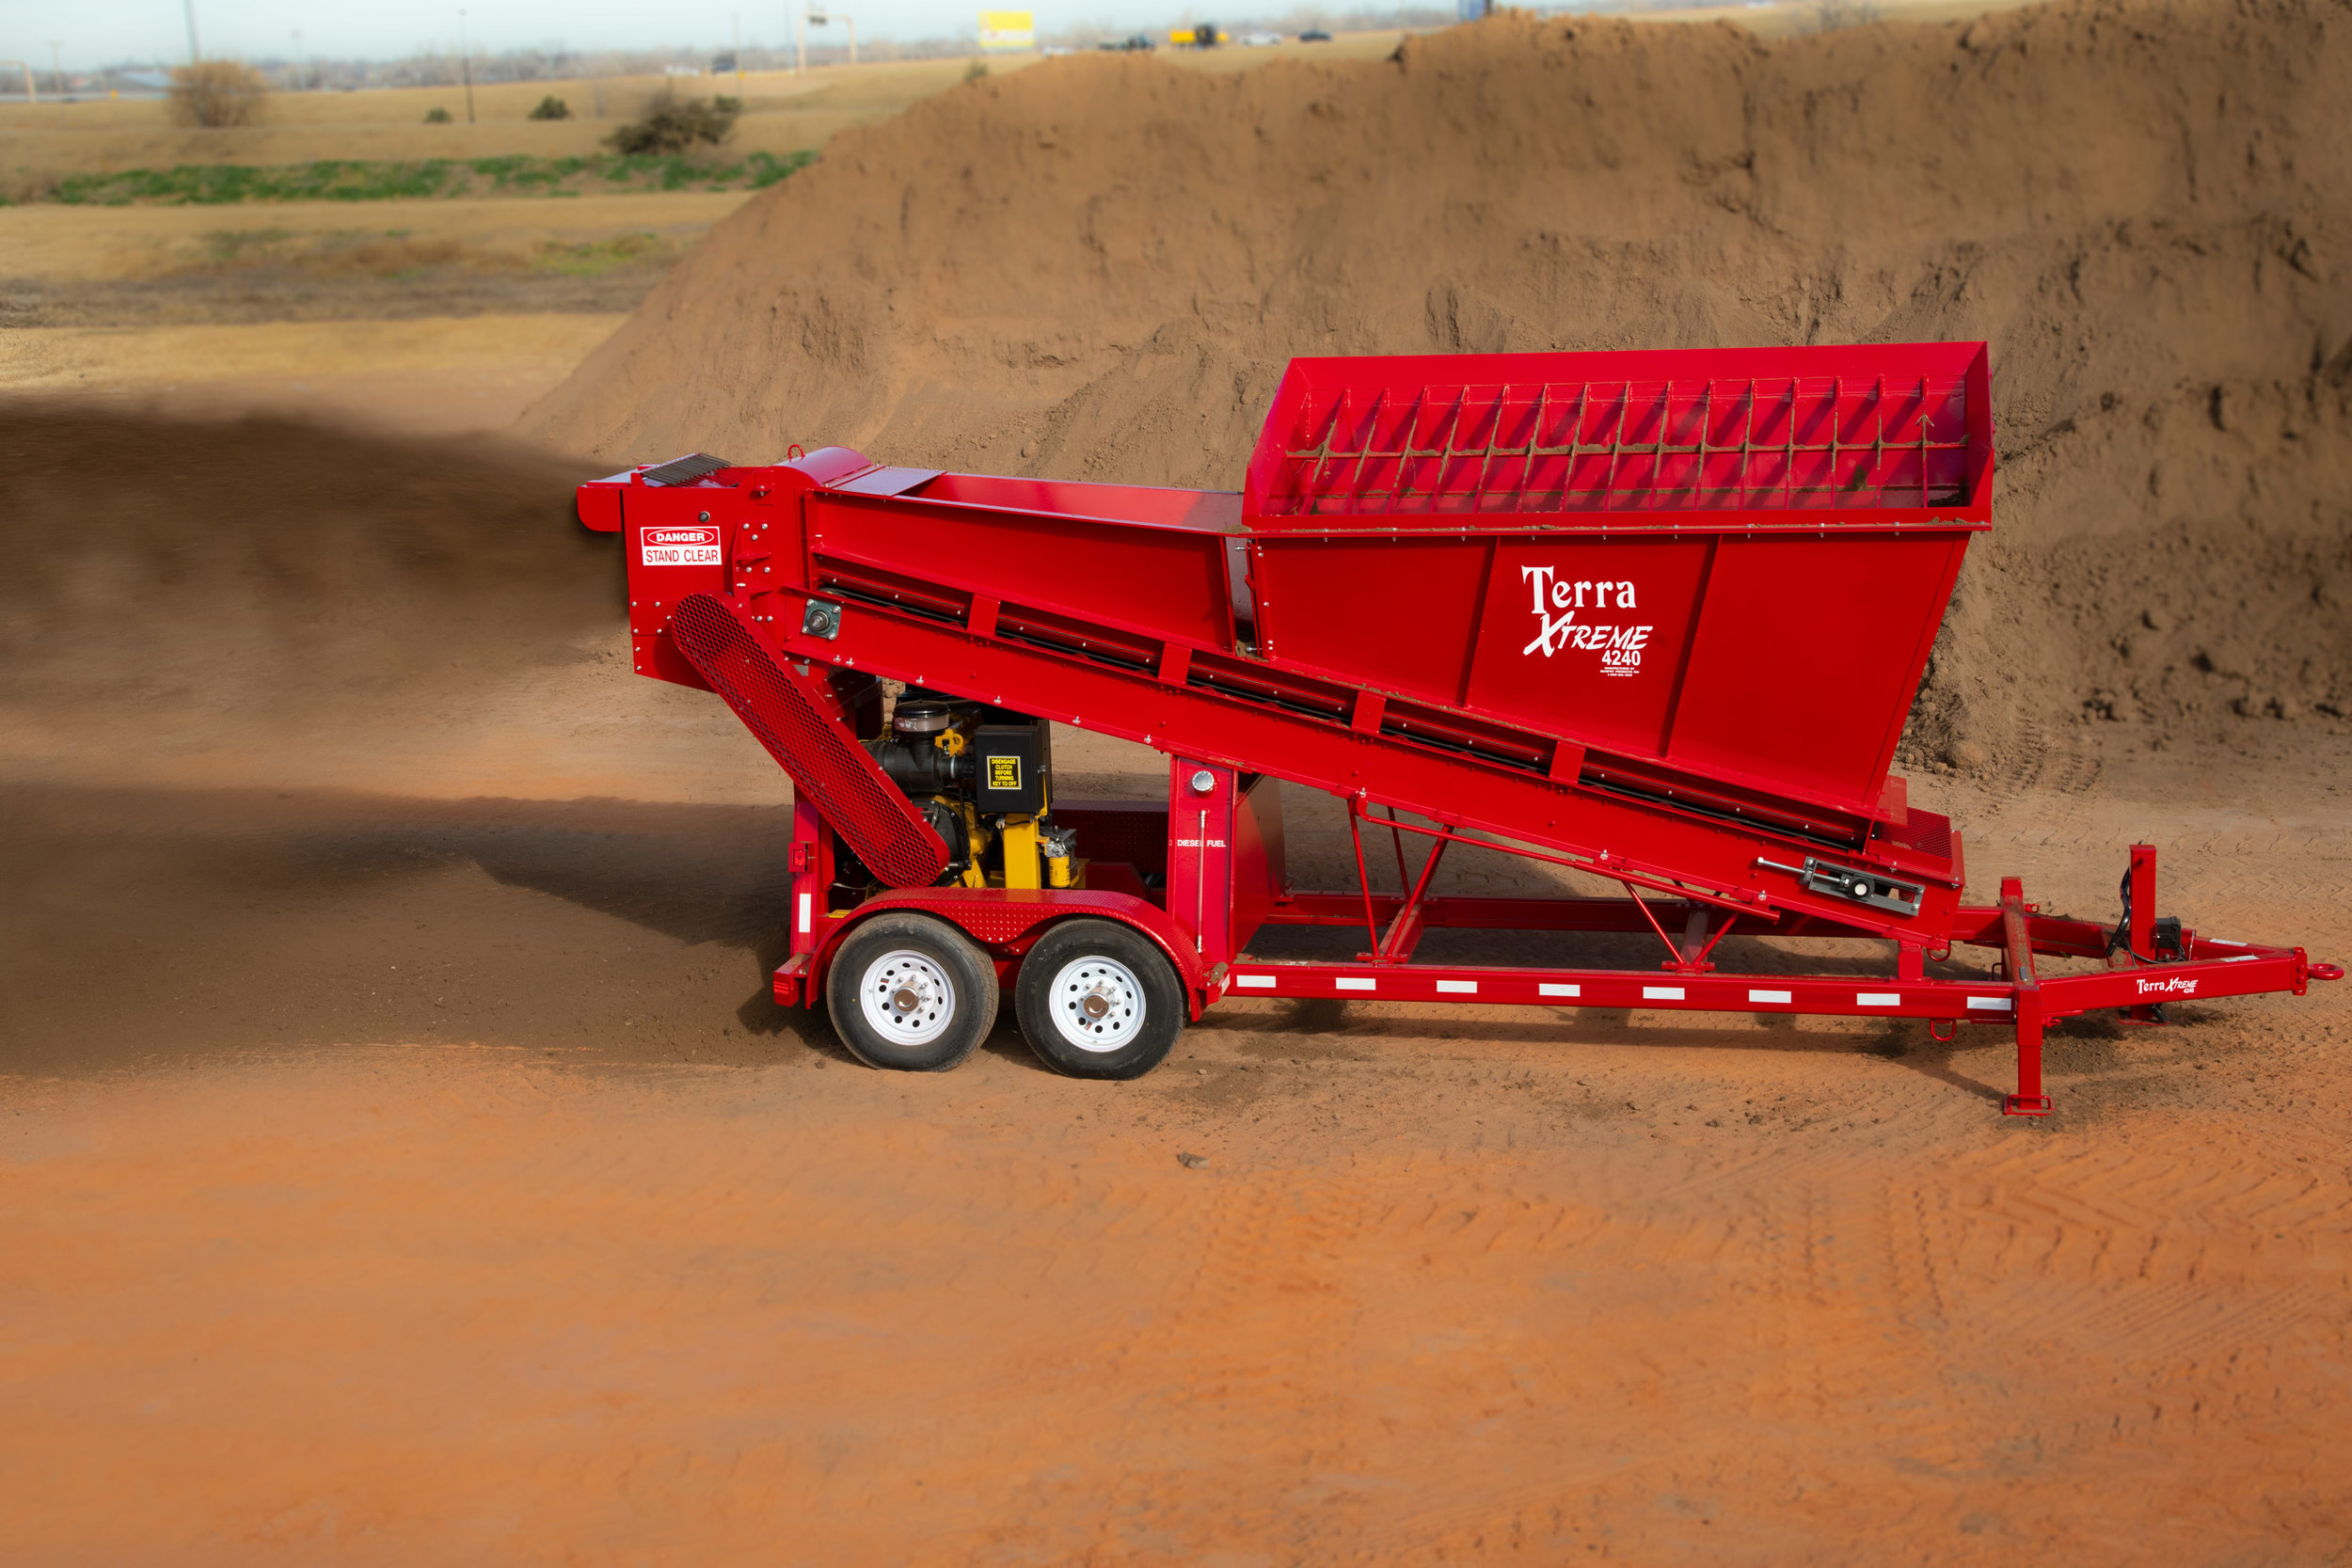 Terra XTREME 4240 - Designed to handle a wide range of materials including those of high moisture content, the 4240 represents the next step up from the 4200 model. The 4240 features an enlarged mill head, and a redesigned configuration within the processing plant, allowing it to pulverize up to 240 cubic yards per hour. The 4240 is the largest, fastest model offered by Murphy Products for soil material...Learn More >>